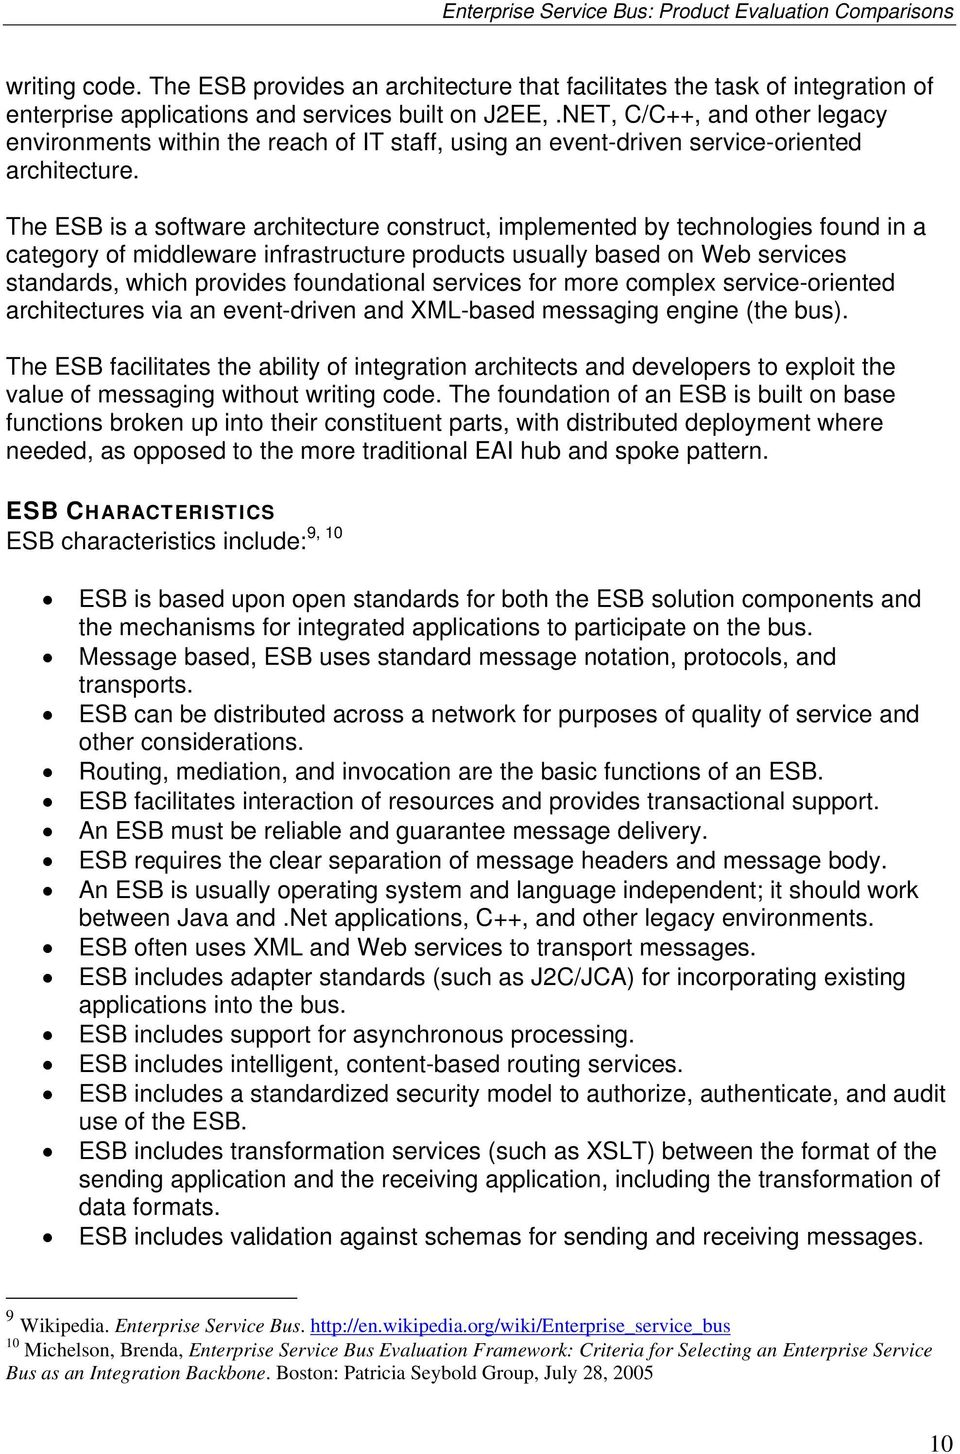 Enterprise Service Bus (ESB) Product Evaluation Comparisons